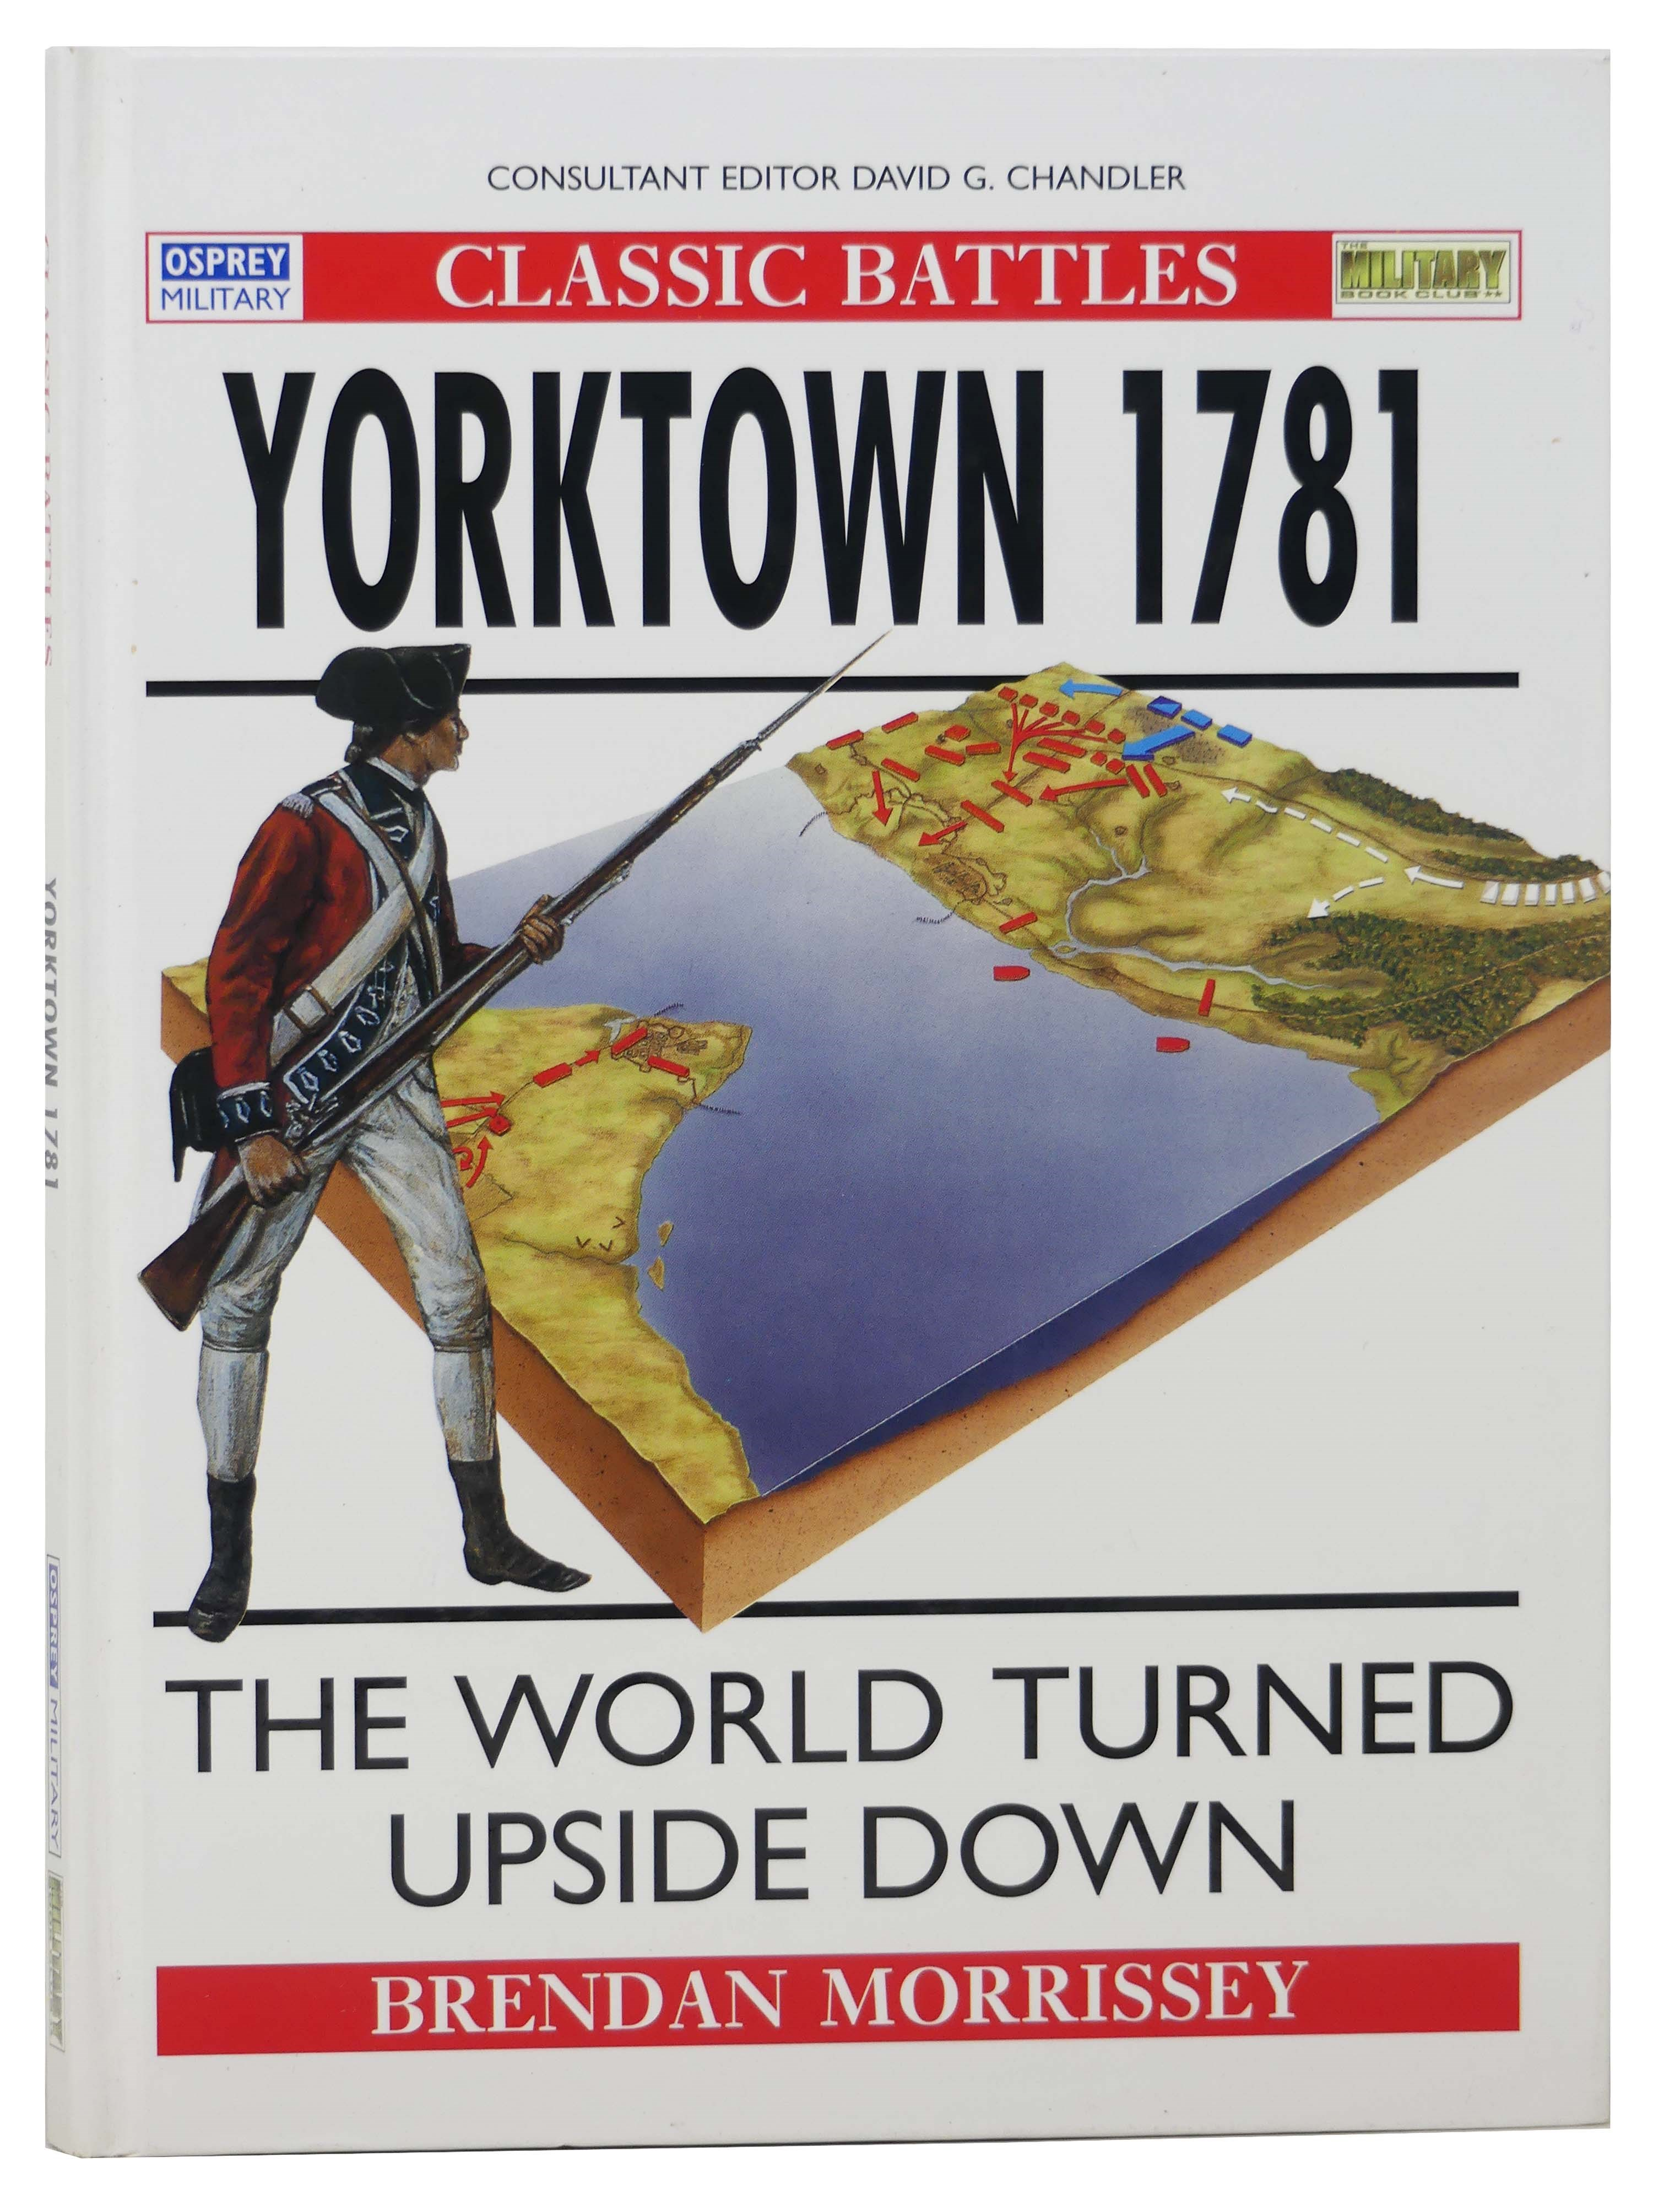 Image for Yorktown 1781: The World Turned Upside Down (Osprey Military, Classic Battles)